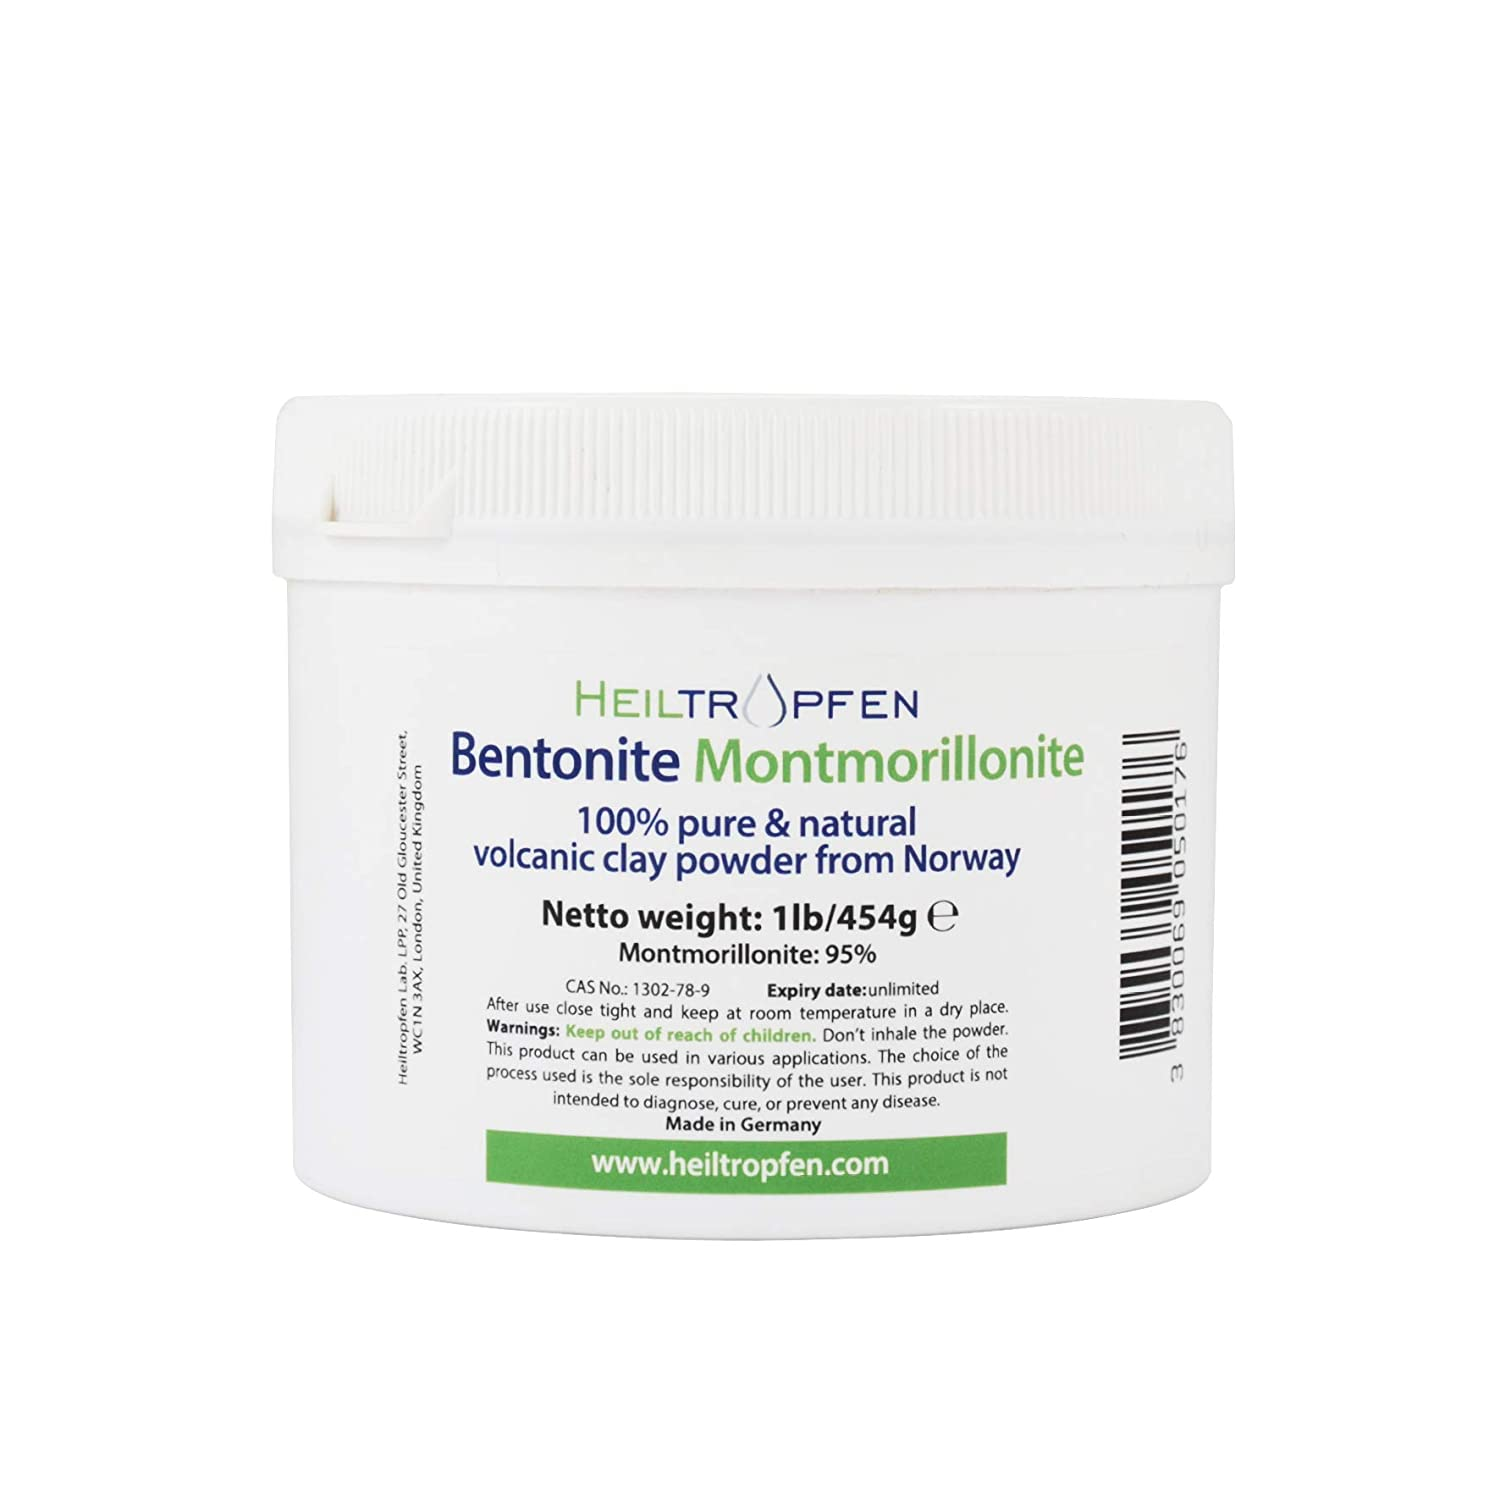 Bentonite Montmorillonite powder, 1 Pound, ULTRA FINE, Montmorillonite content: 95%, Natural Mineral Dust. Heiltropfen